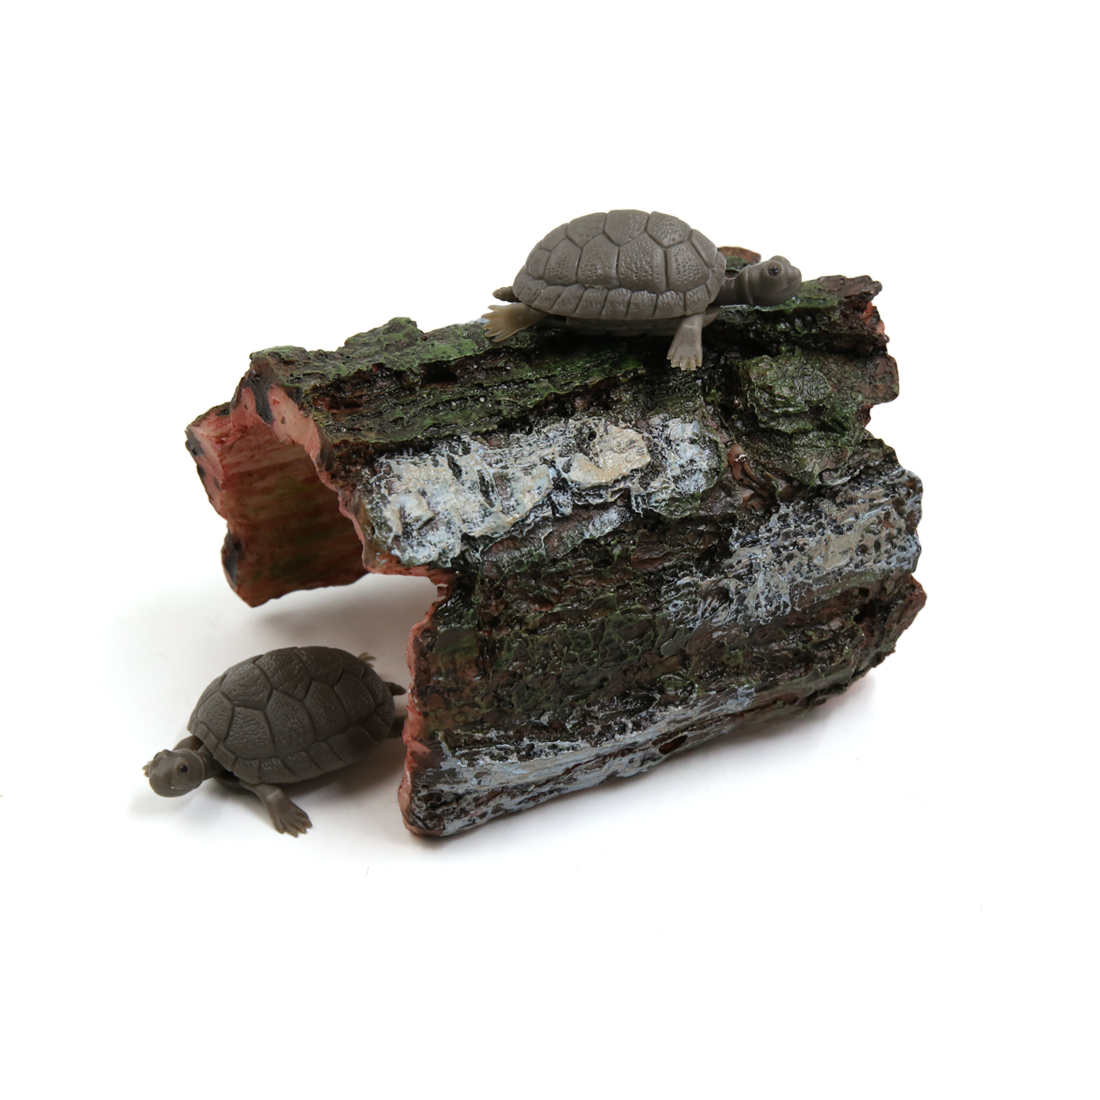 Green Gray Resin Tree Hole Reptiles Turtle Hut Shelter Decor for Terrarium